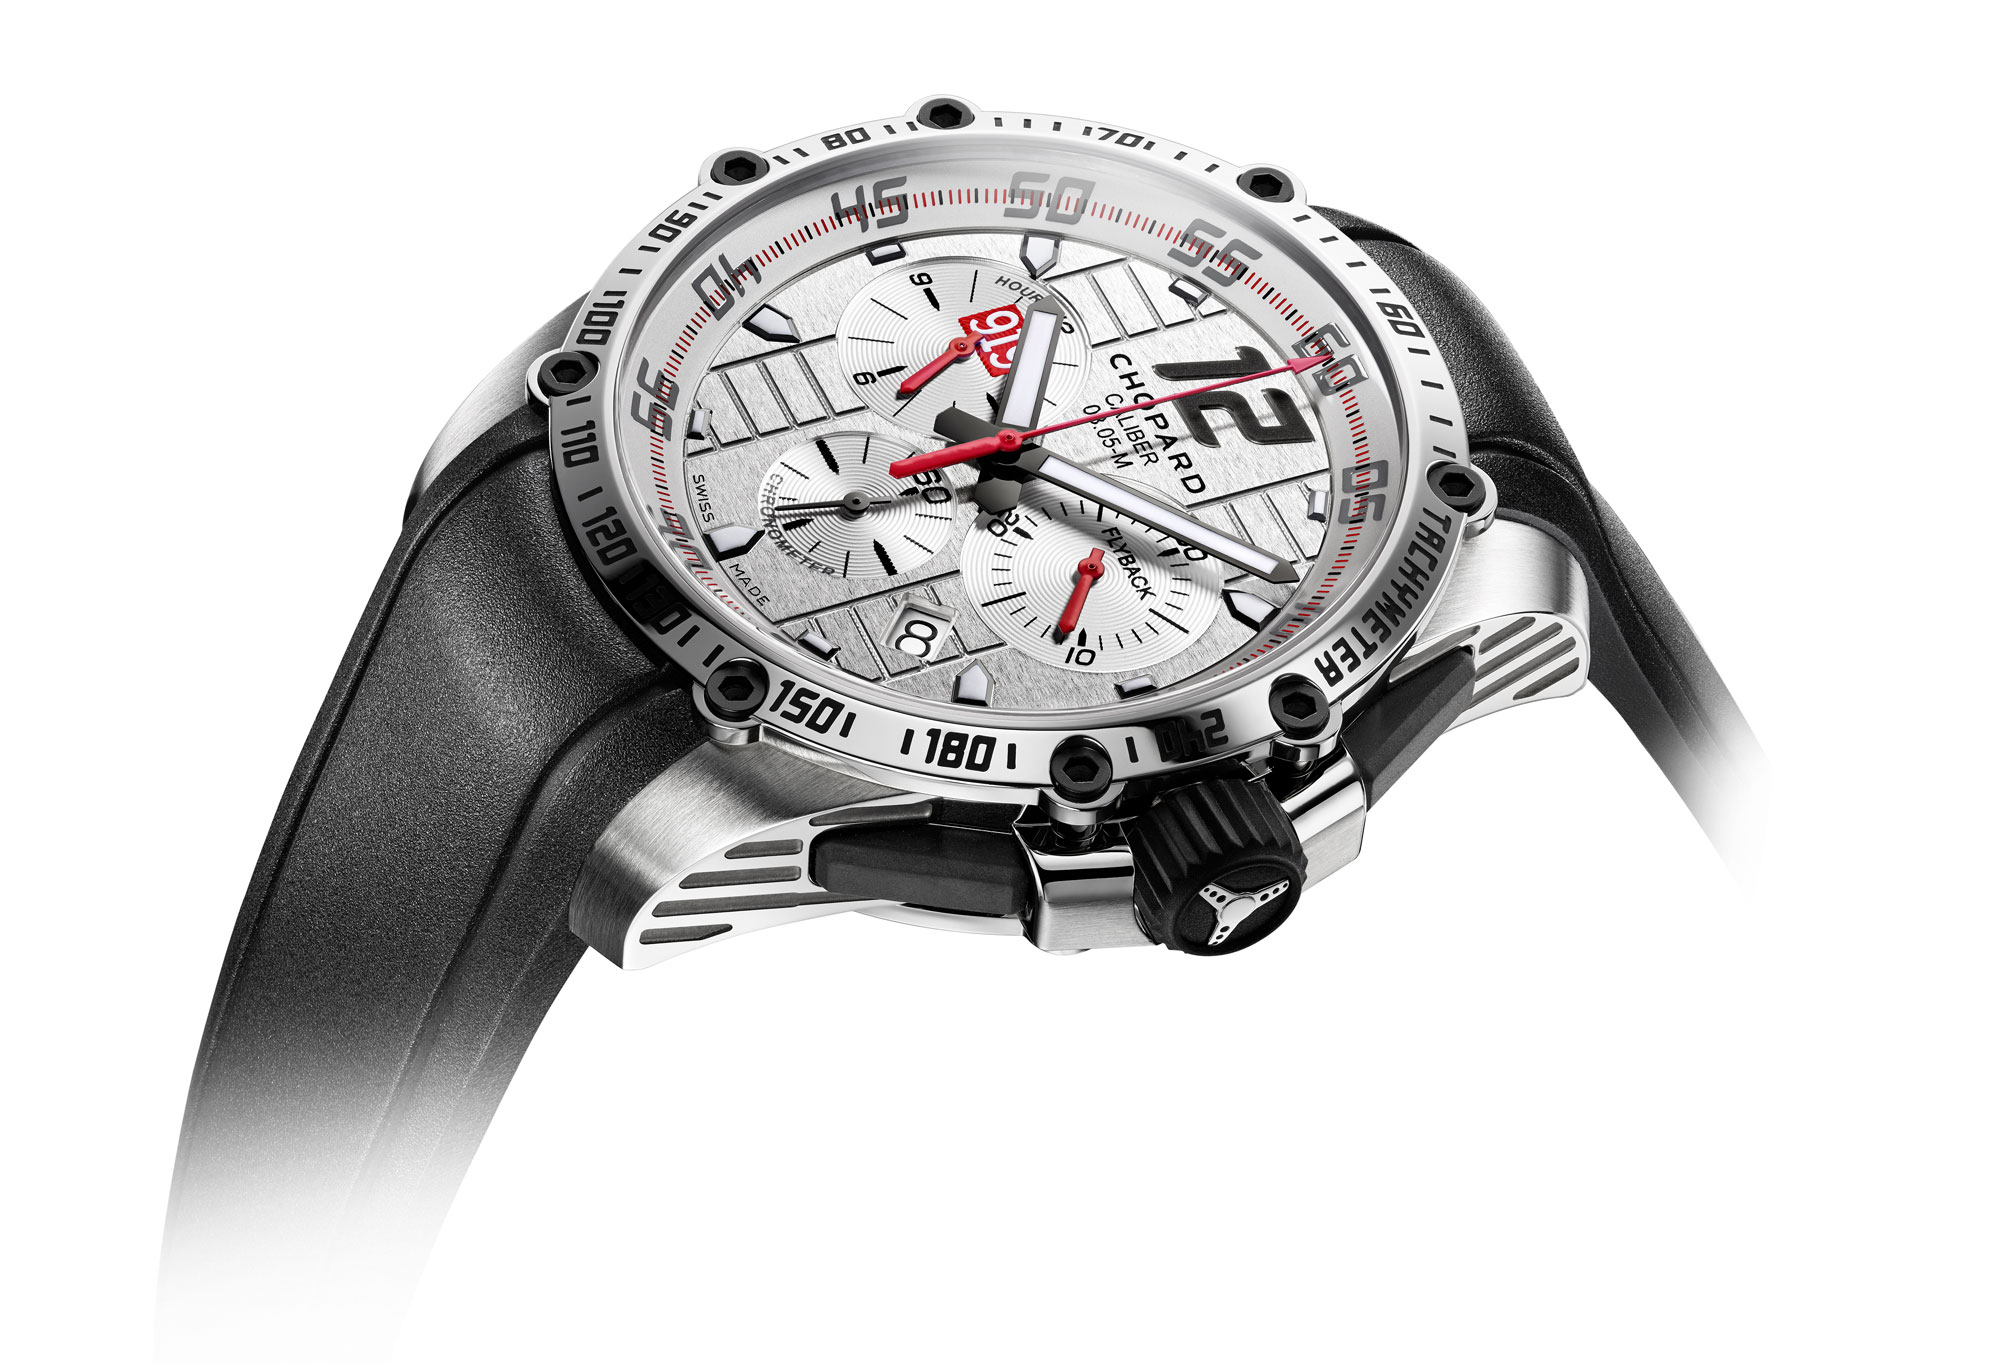 Superfast Chrono Porsche 919 Edition from Chopard